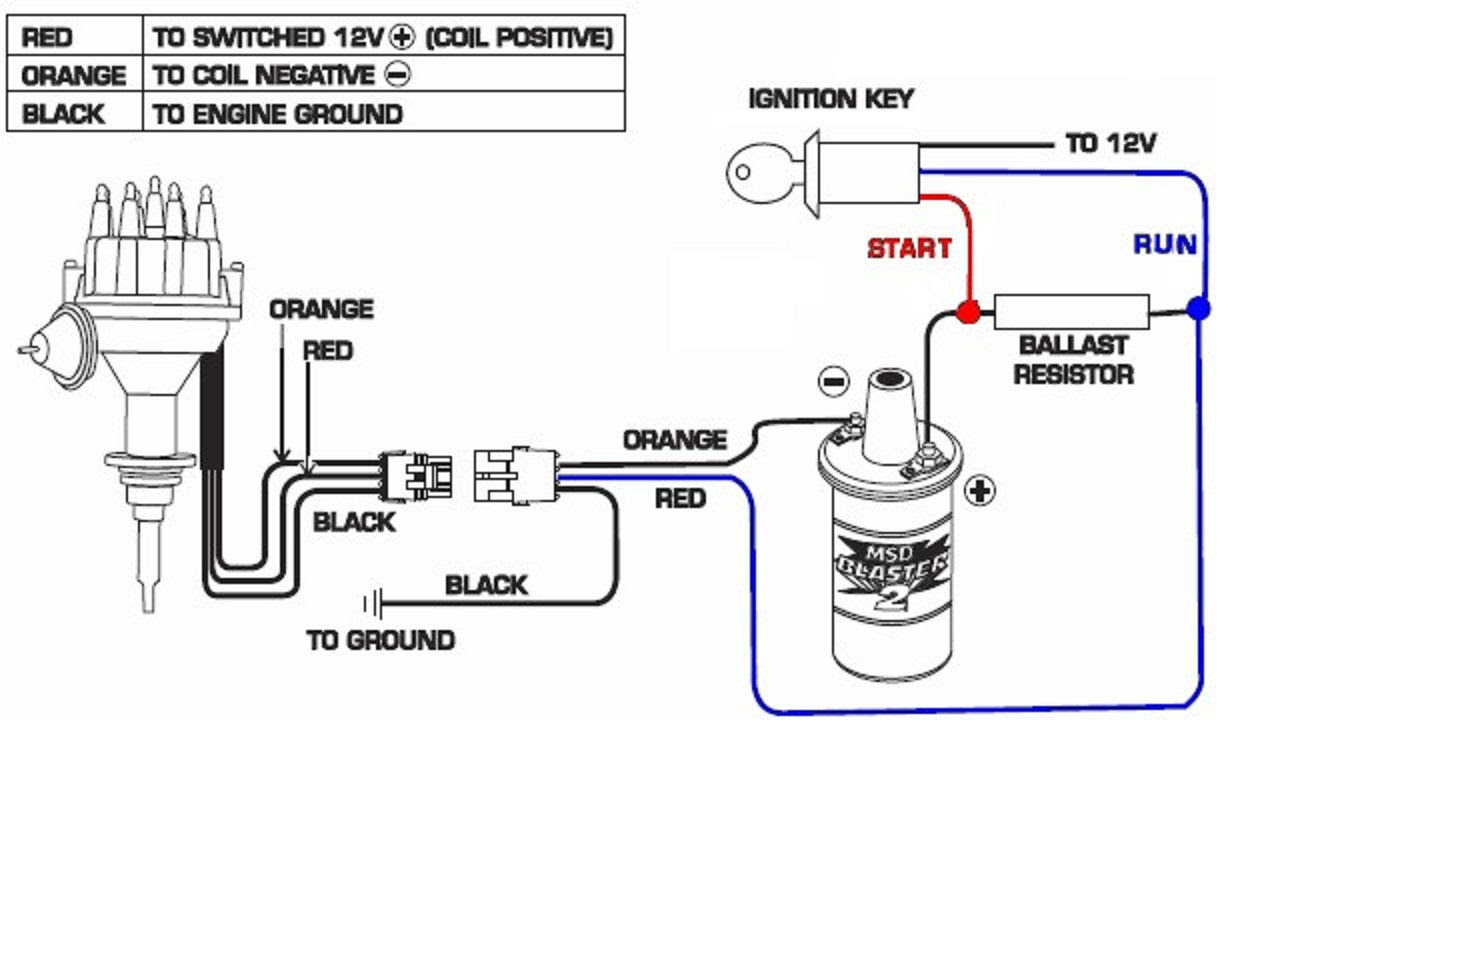 1968 Ford Car Ignition Wire Diagram Full Hd Version Wire Diagram Cause And Effect Diagram Radd Fr